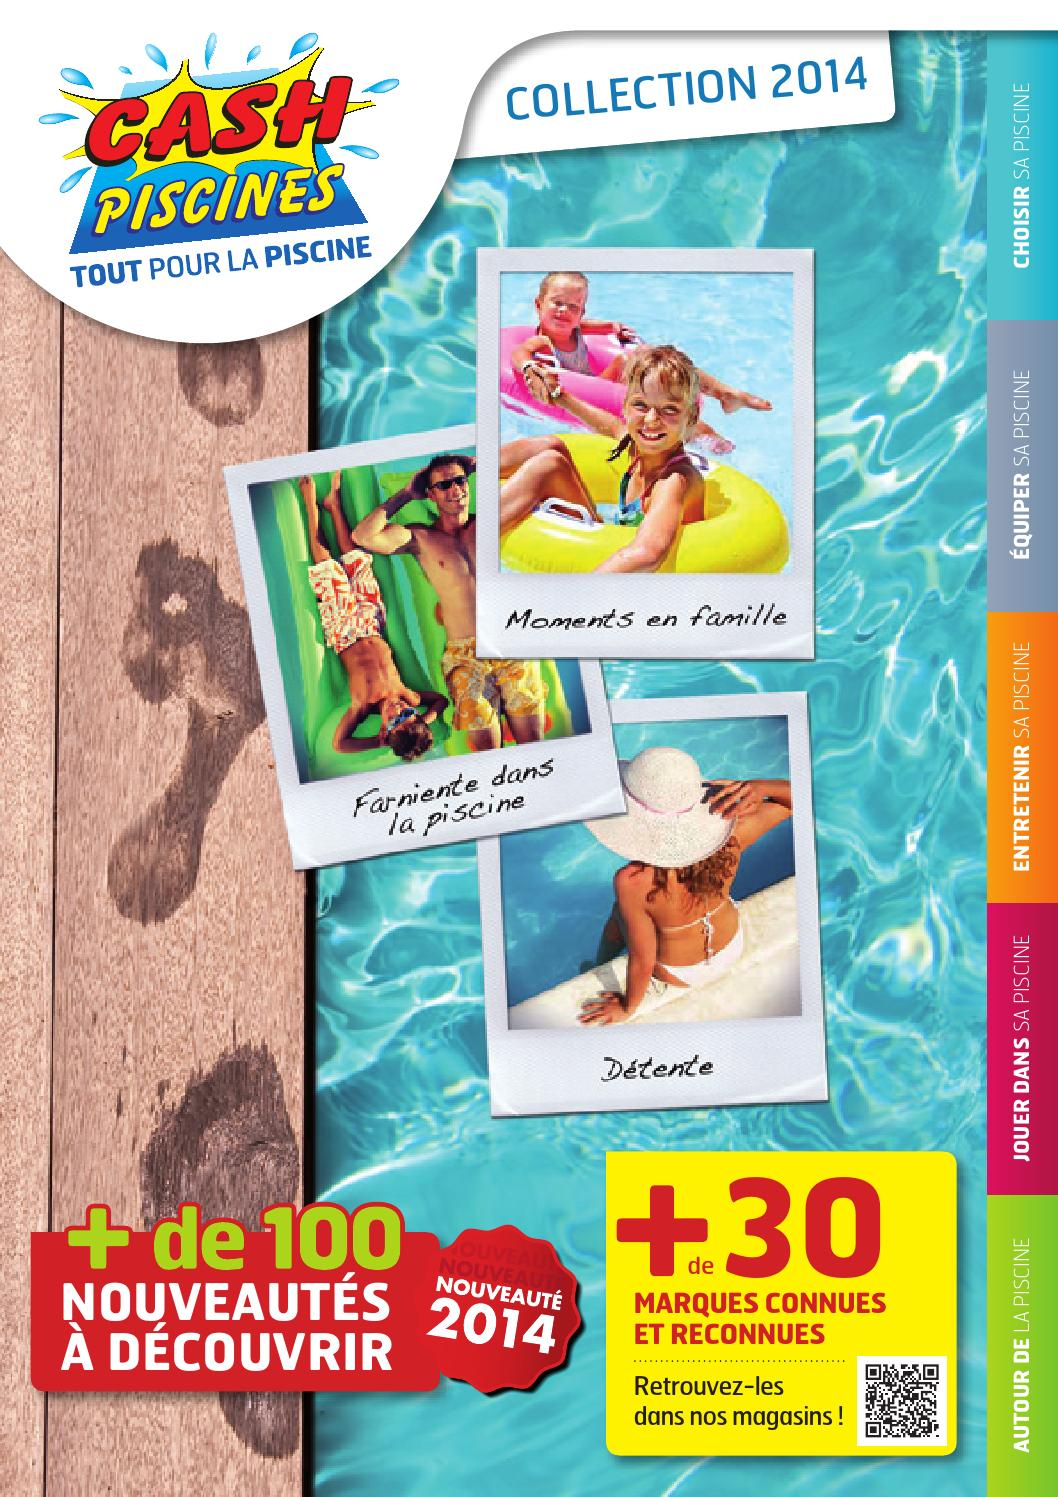 Cash Piscines Catalogue 2014 By Octave Octave - Issuu intérieur Cash Piscine Agen